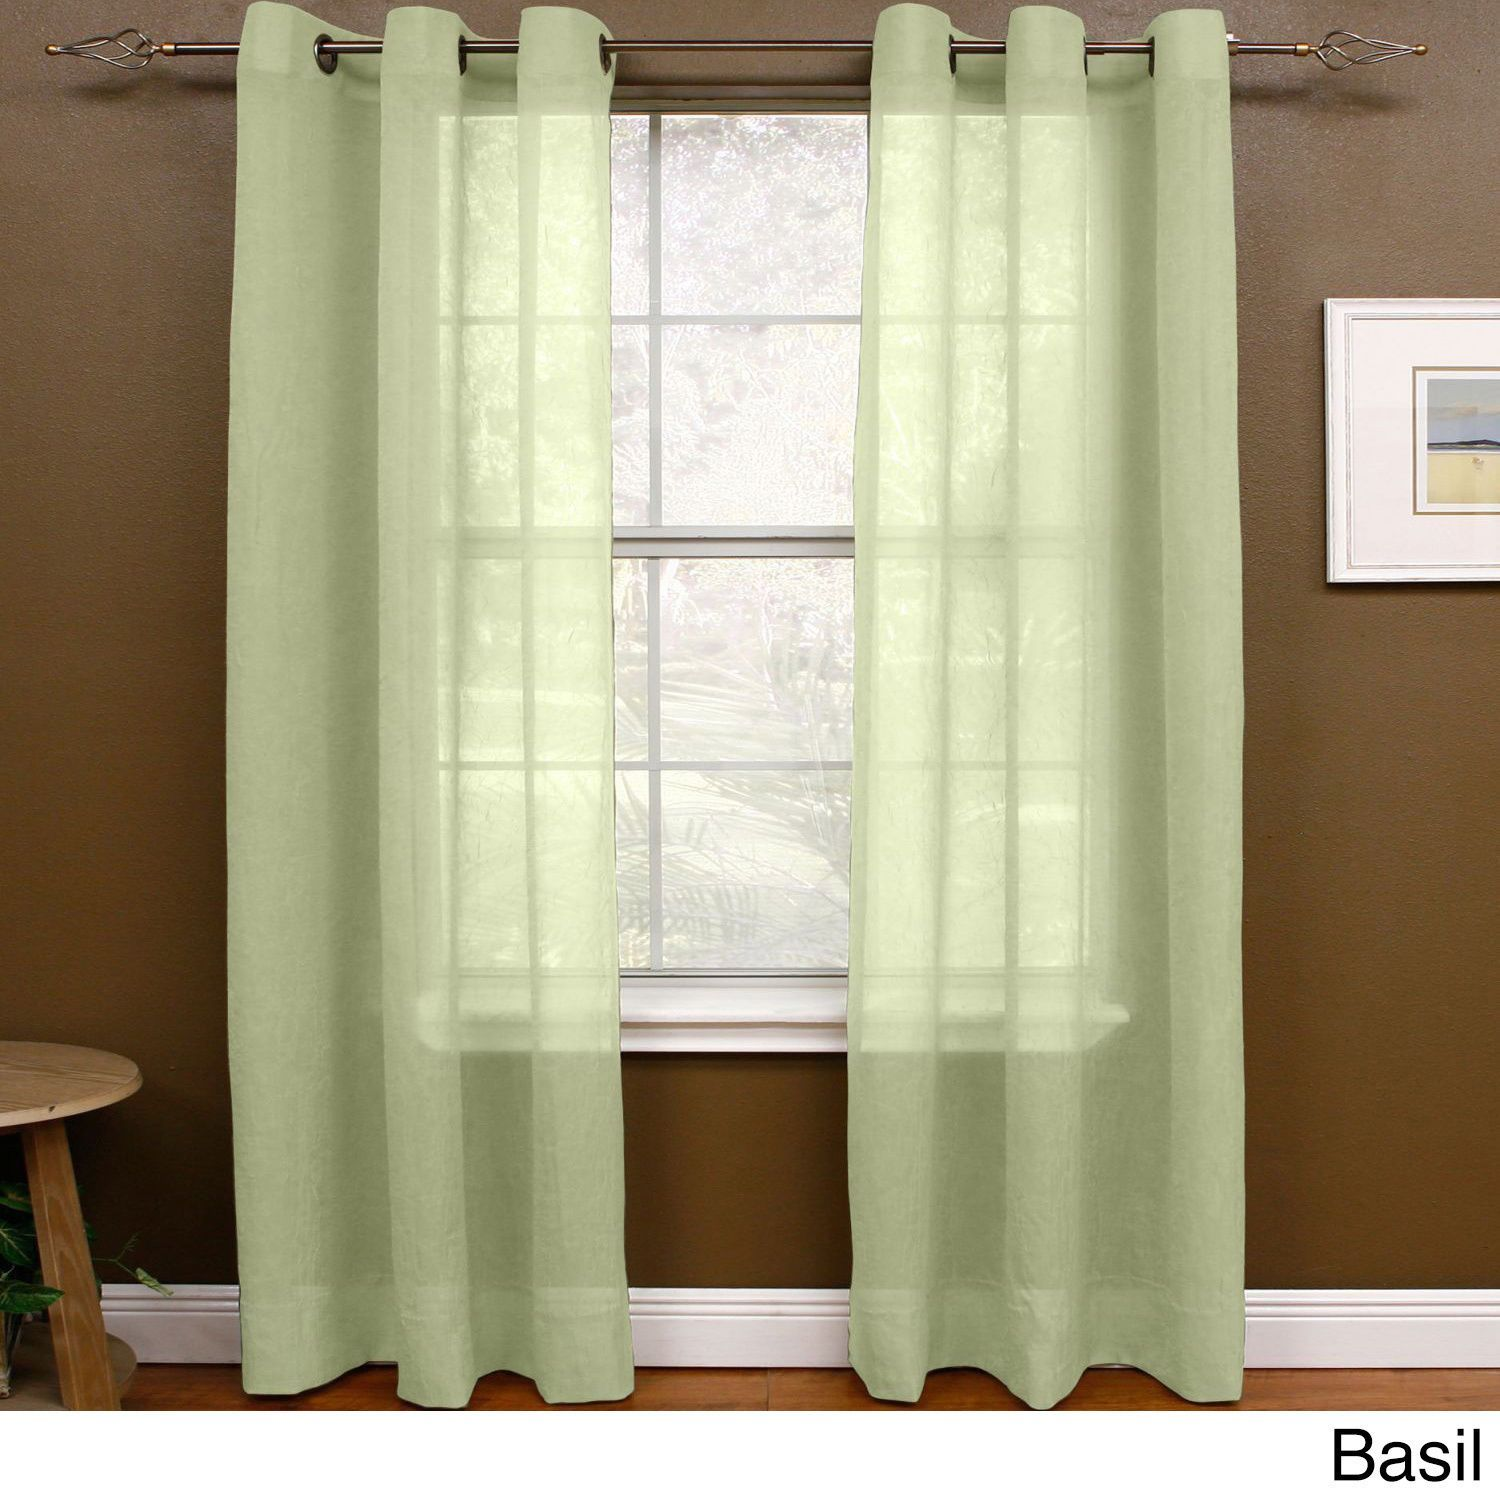 "Miller Curtains Preston 63-Inch Grommet Sheer Panel (48"" X 63"",Basil), Green, Size 63 Inches (Polyester, Solid)"